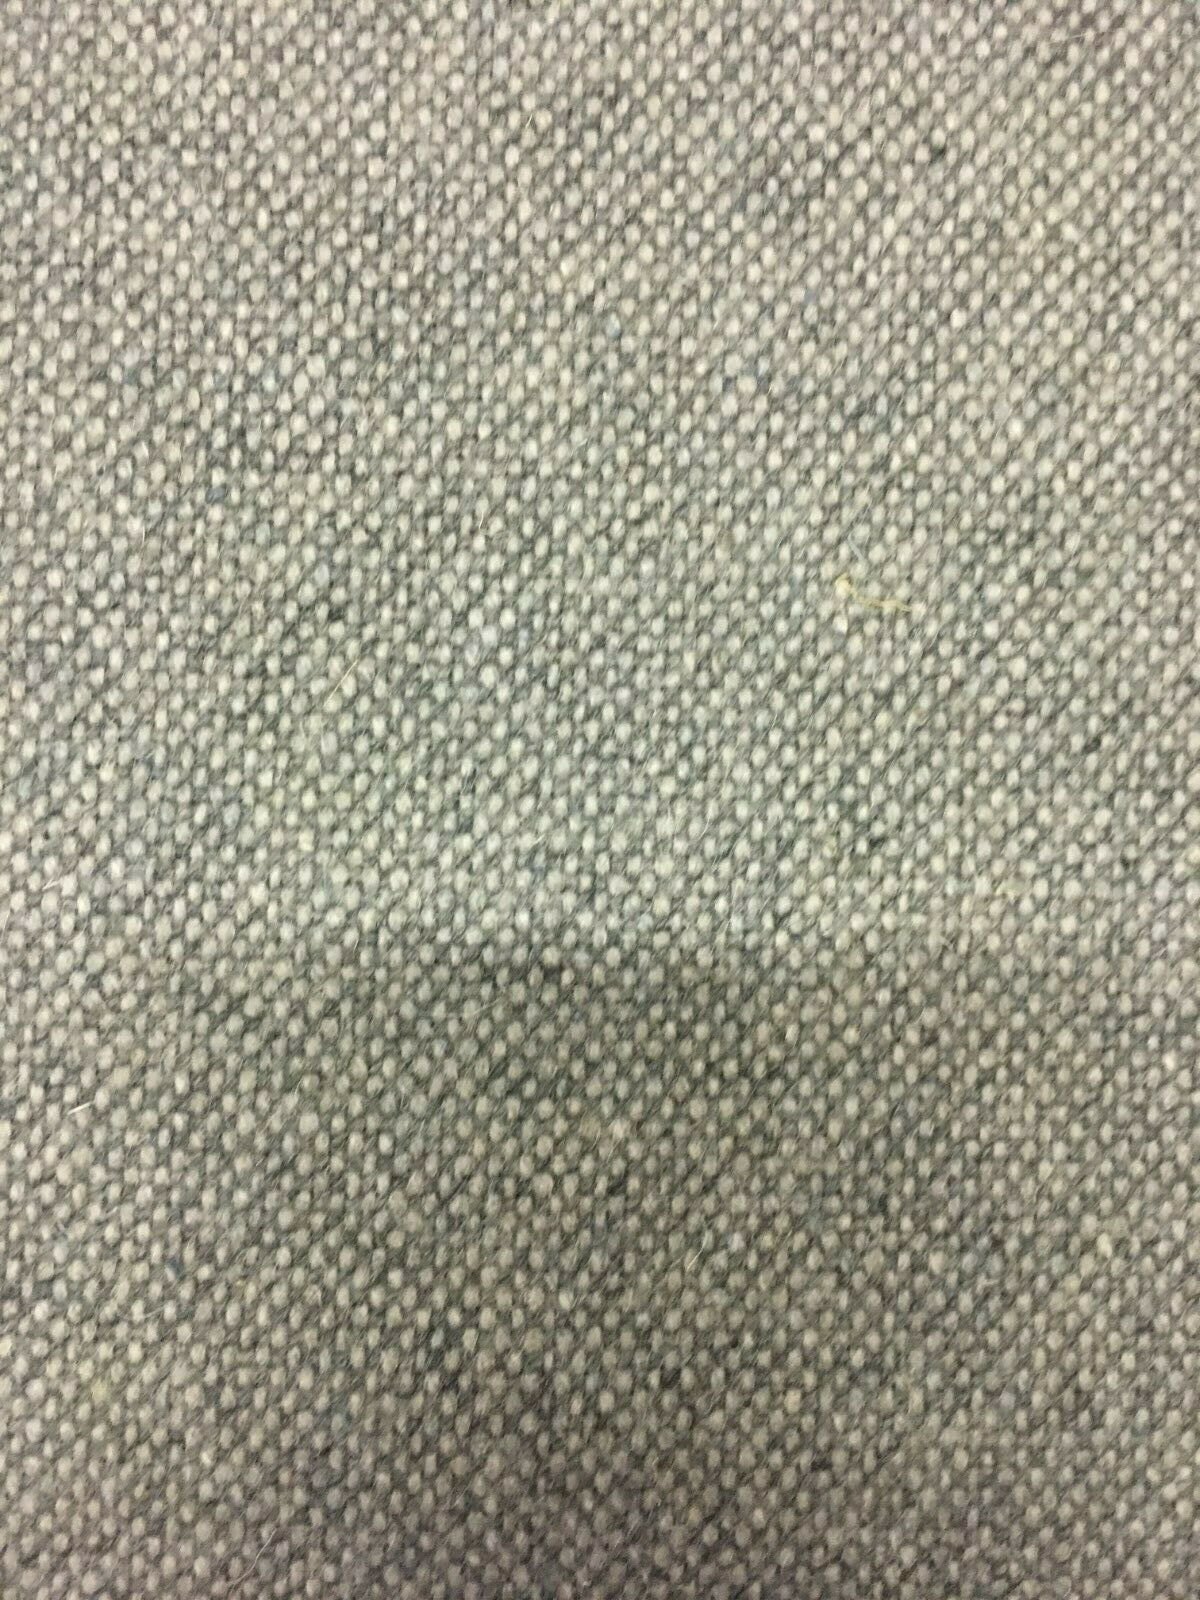 Designtex Tweed Medium Gray Woven Wool Upholstery Fabric 2.1 yards PW